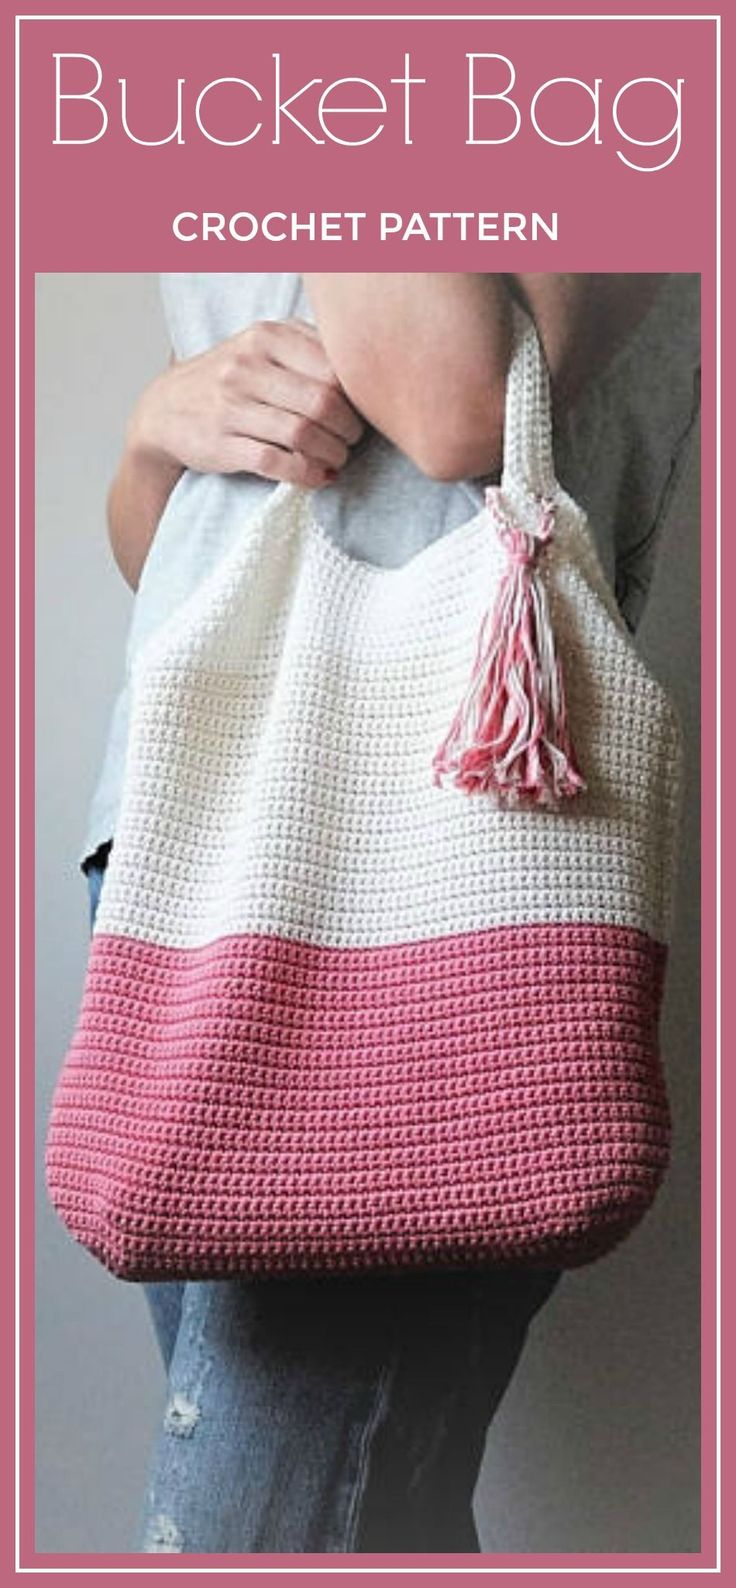 CROCHET PATTERN Crochet Tote Bag PATTERN, Bucket Bag, Boho Crochet, Boho Bag, Purse Pattern, Hand Bag, Slouchy Bag, Crochet Sac, Summer Tote #crochetpattern #crochet #bag #affiliate #tote